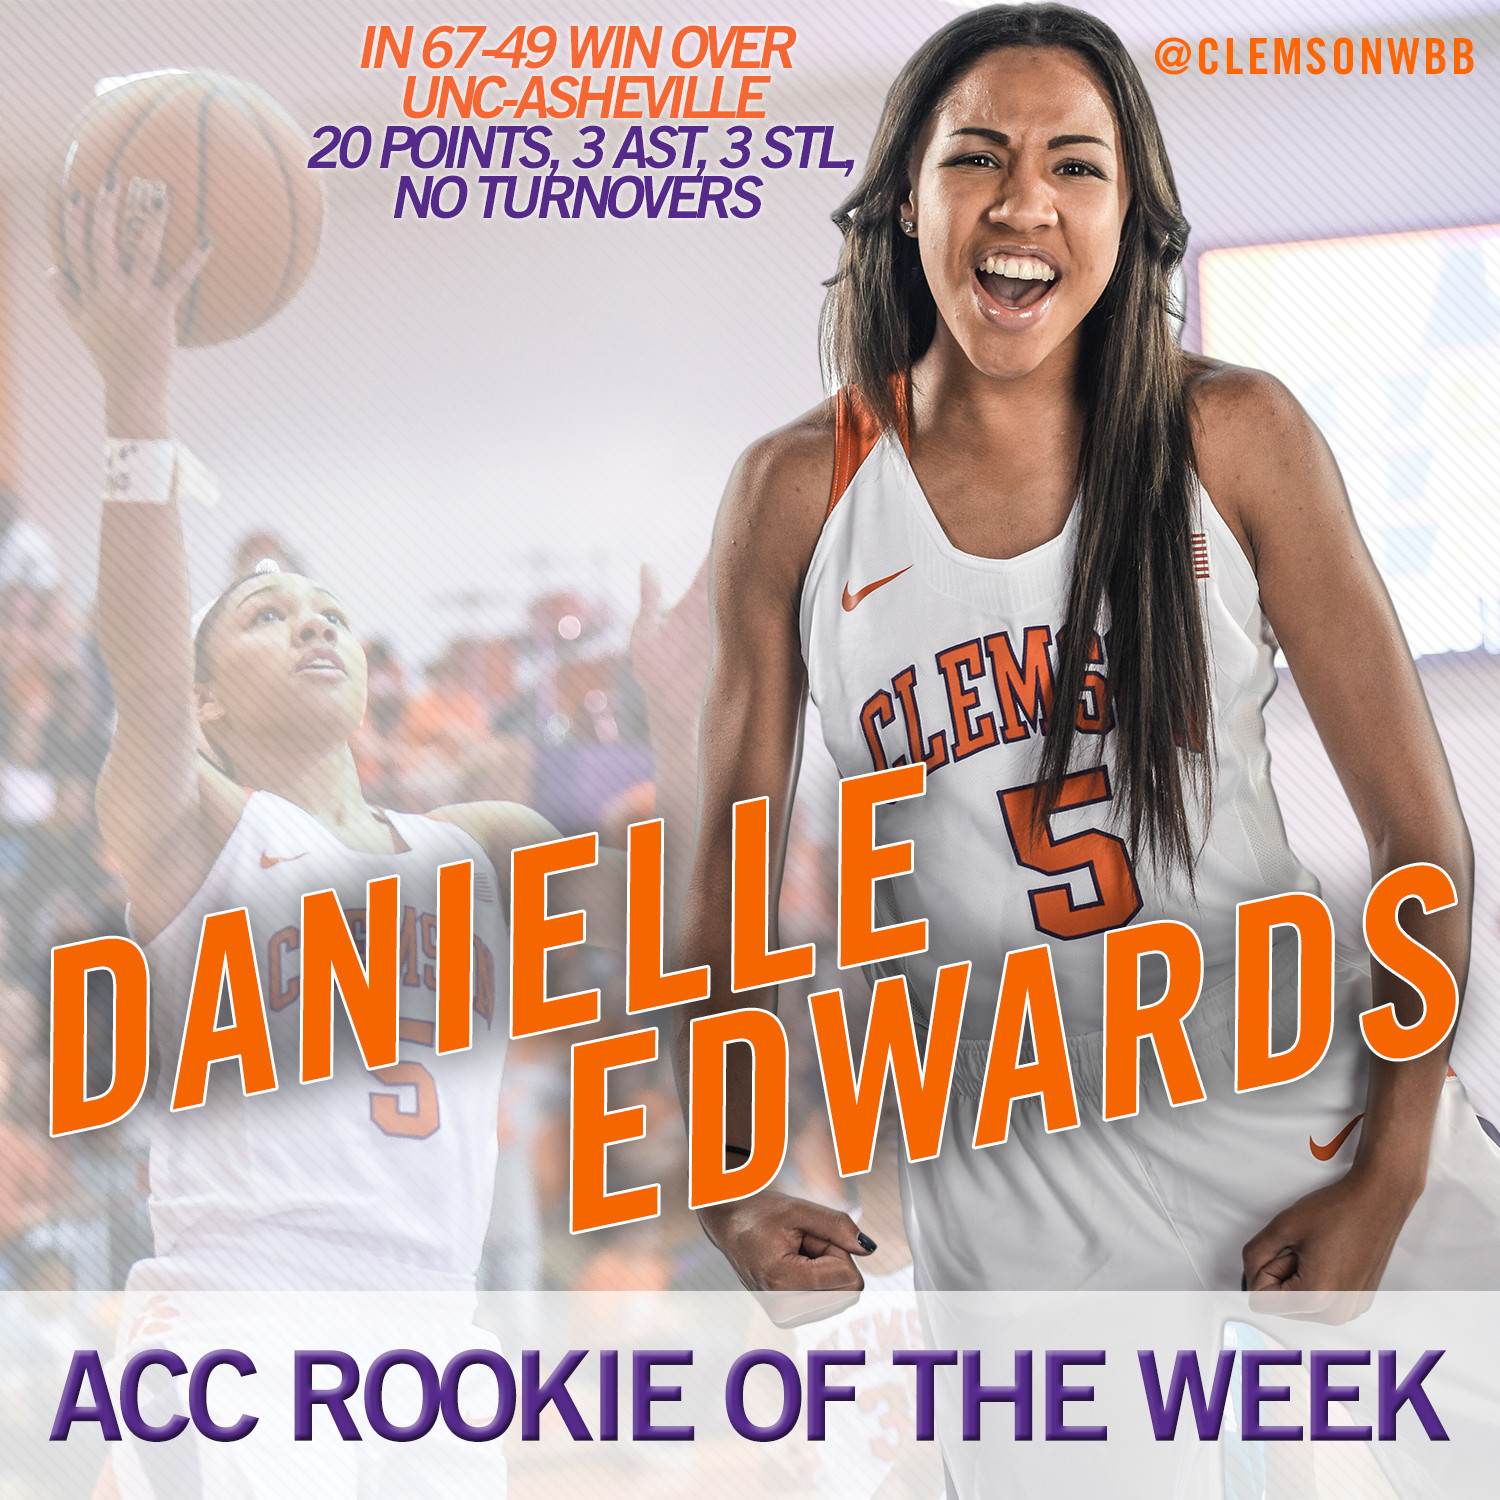 Danielle Edwards Named ACC Rookie of the Week